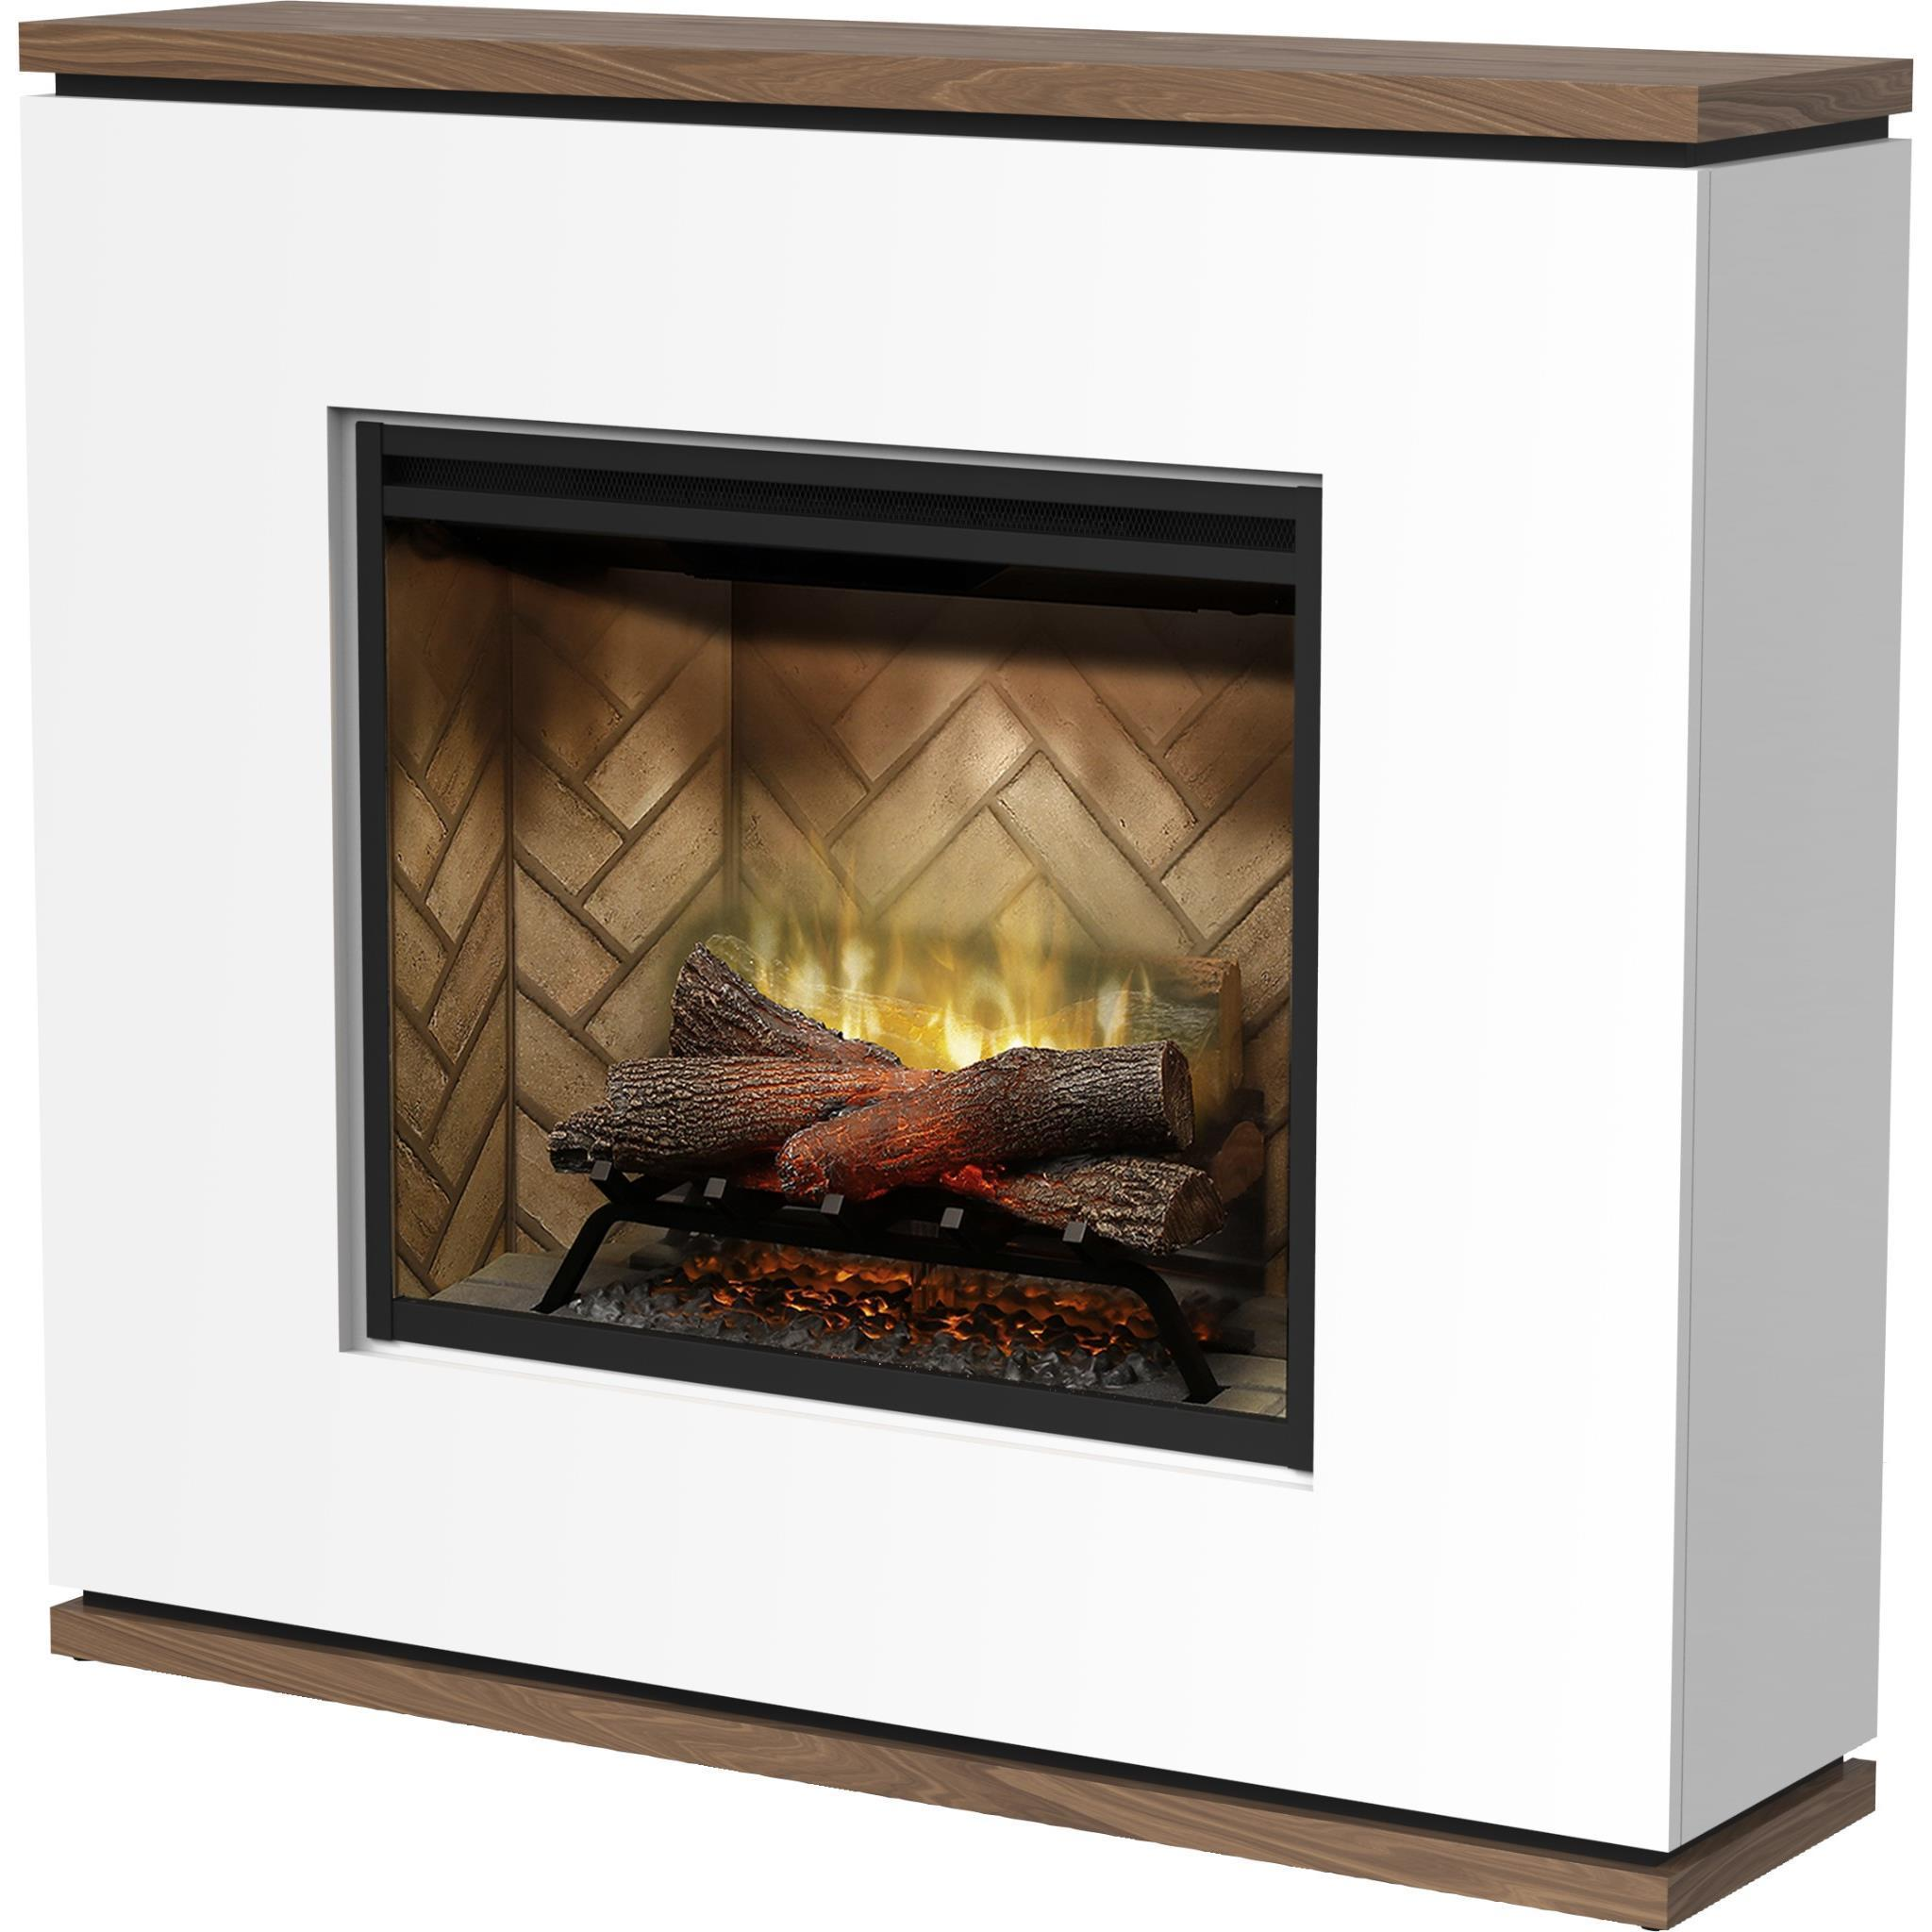 Dimplex Strata 2kW Revillusion Suite Electric Fireplace with Mantel